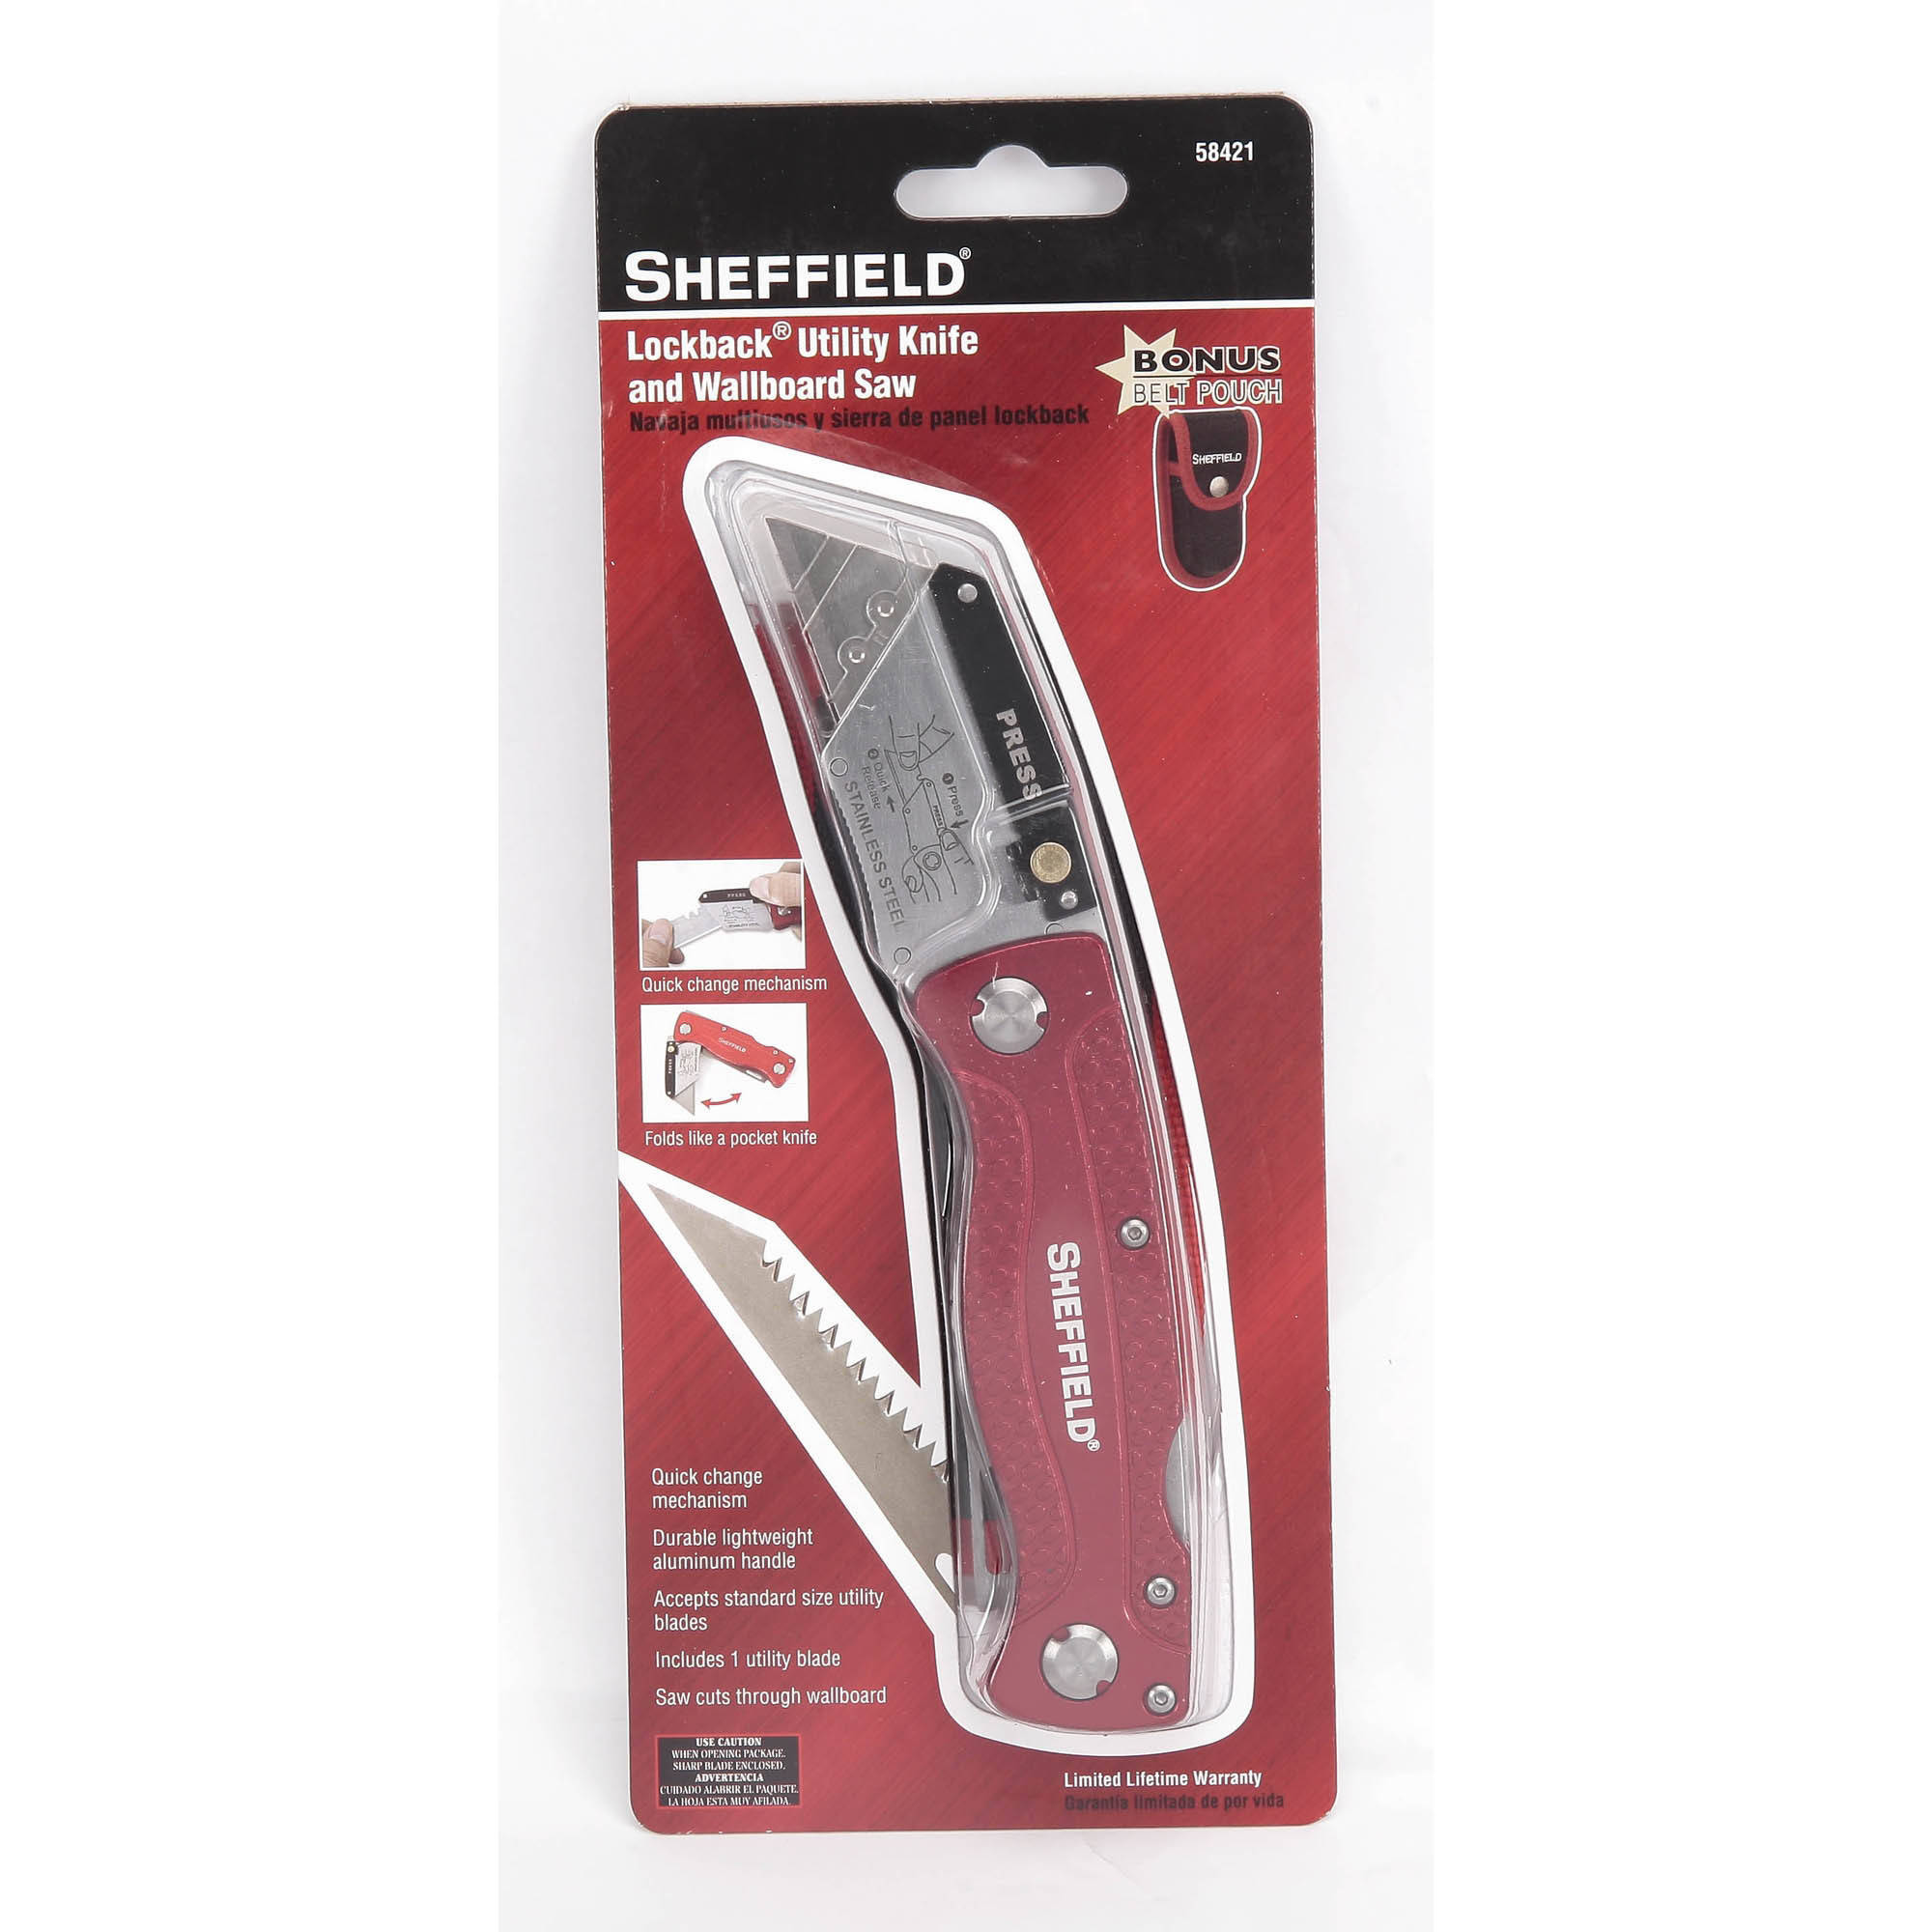 Sheffield Heavy-Duty Knife and Utility Saw with Belt Pouch